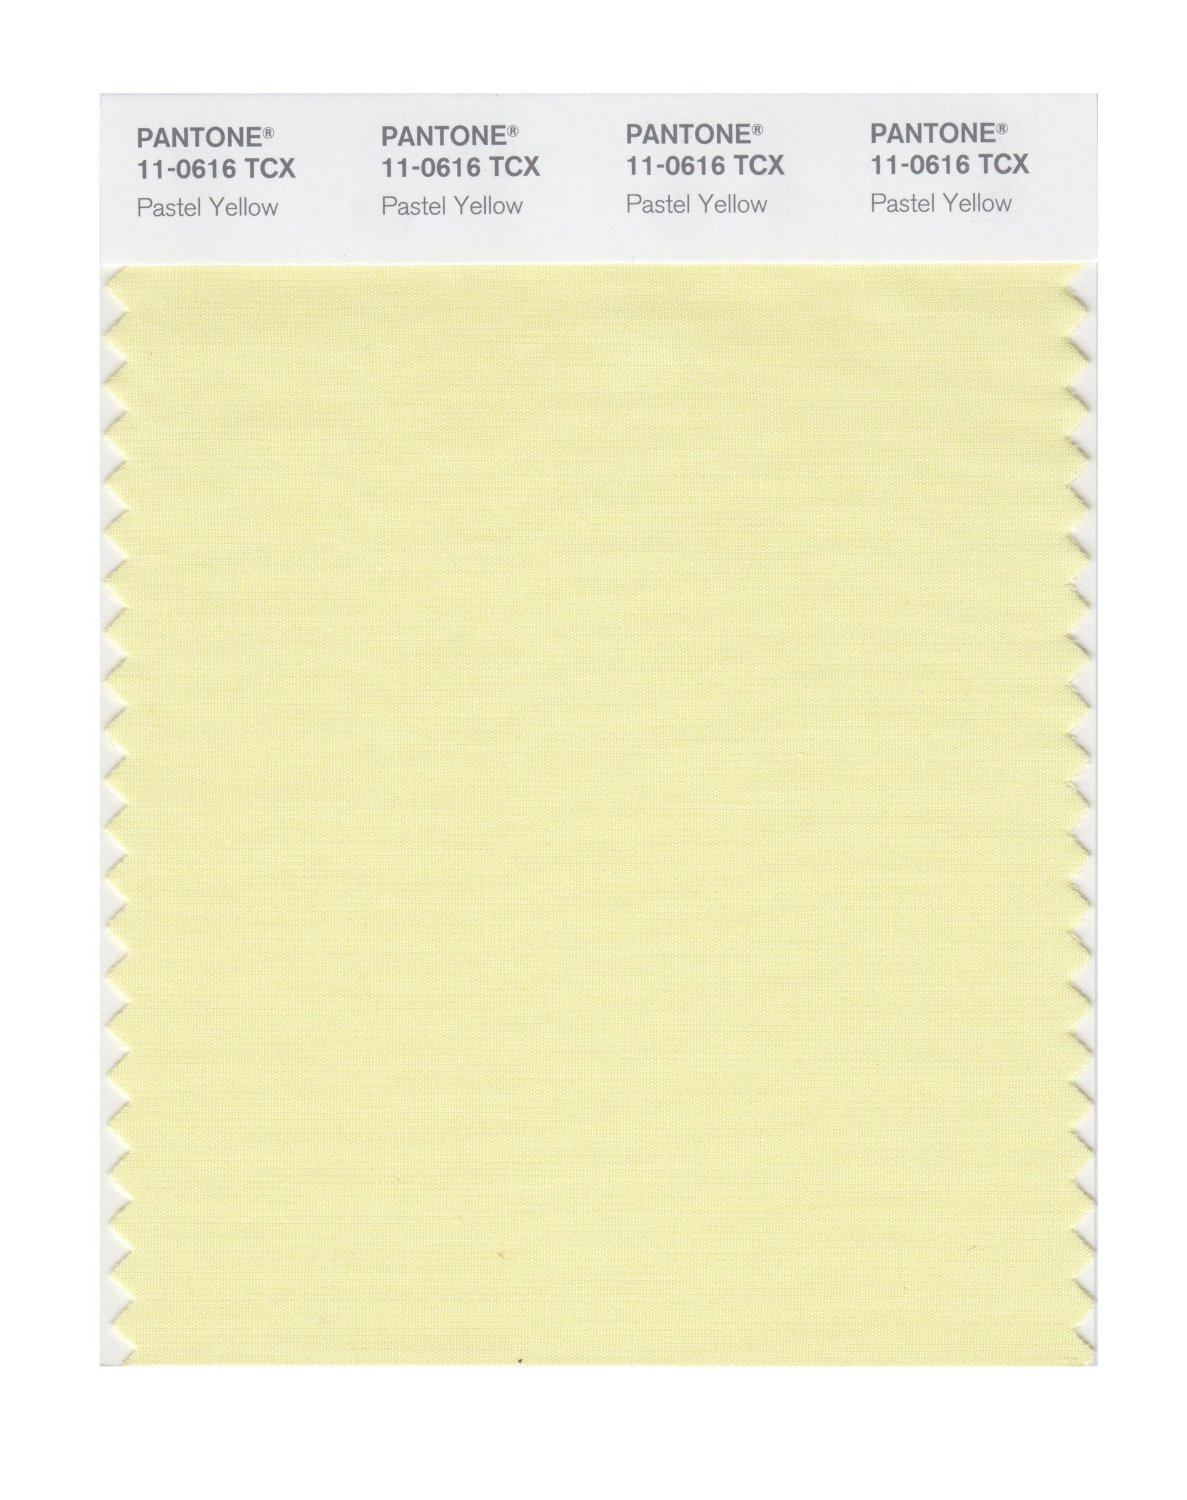 Pantone Smart Swatch 11-0616 Pastel Yellow